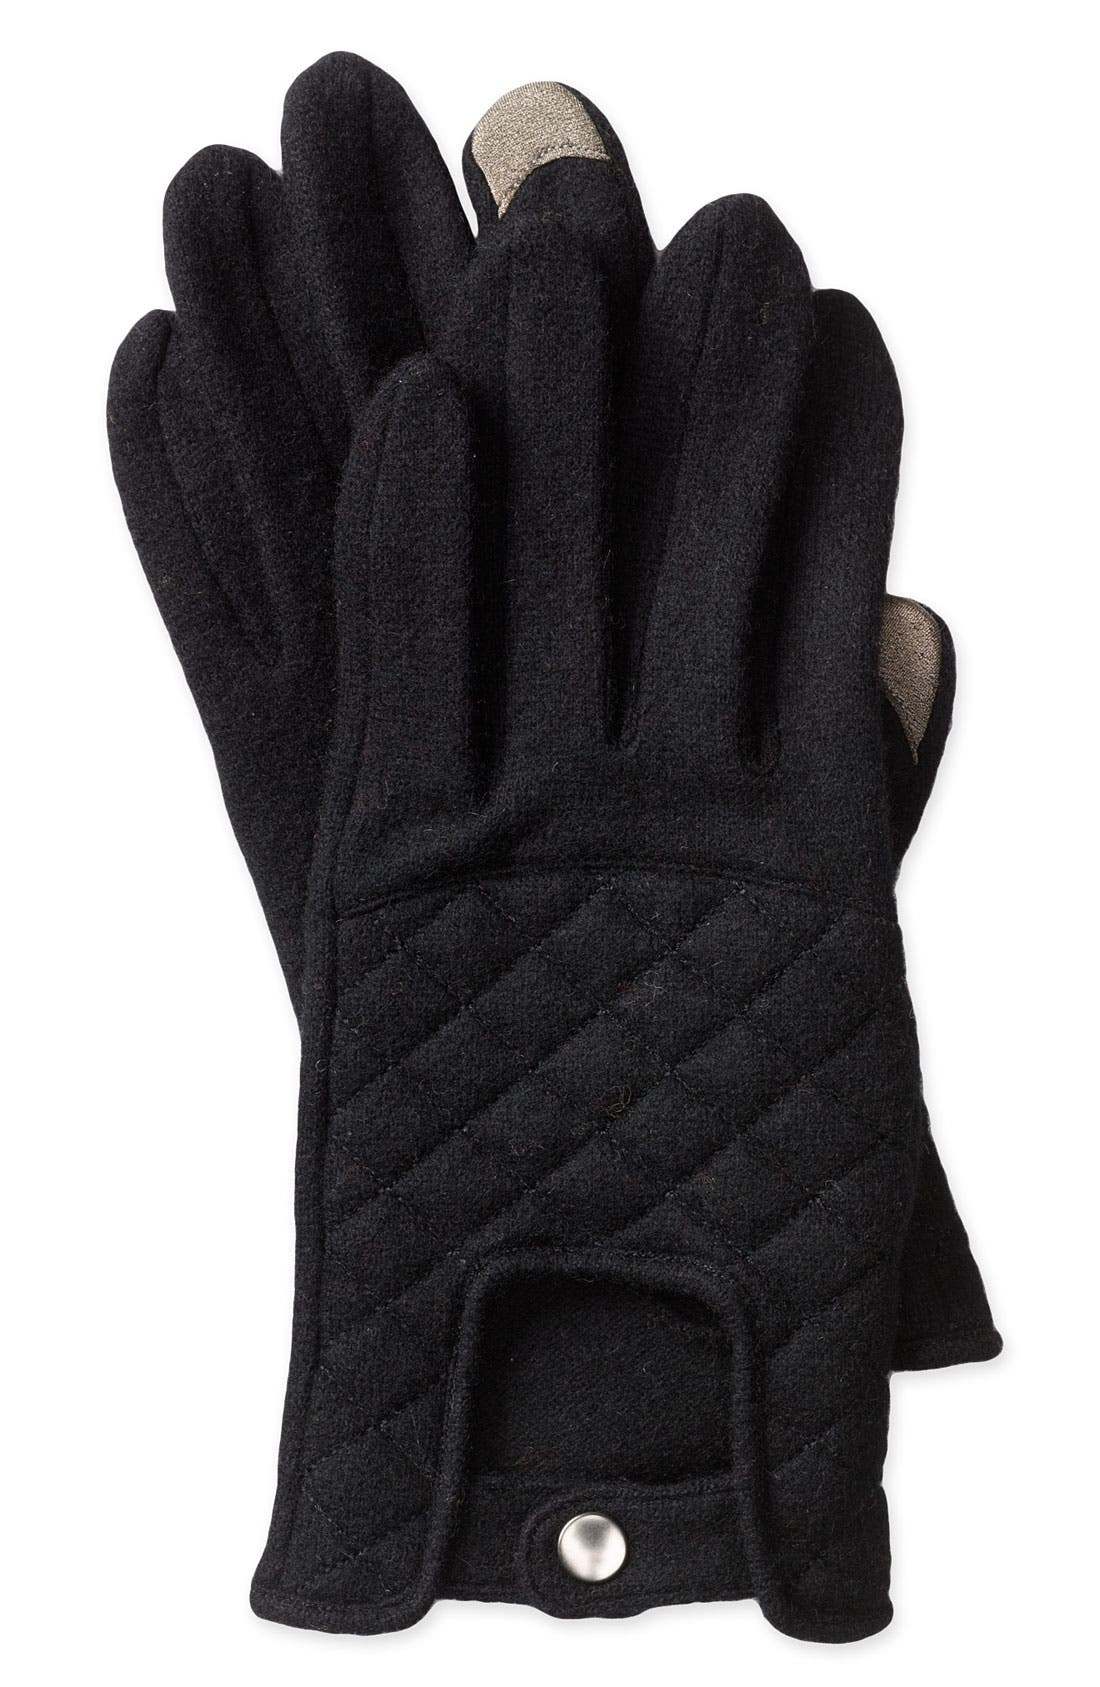 Alternate Image 1 Selected - Echo 'Driver Touch' Wool Blend Gloves